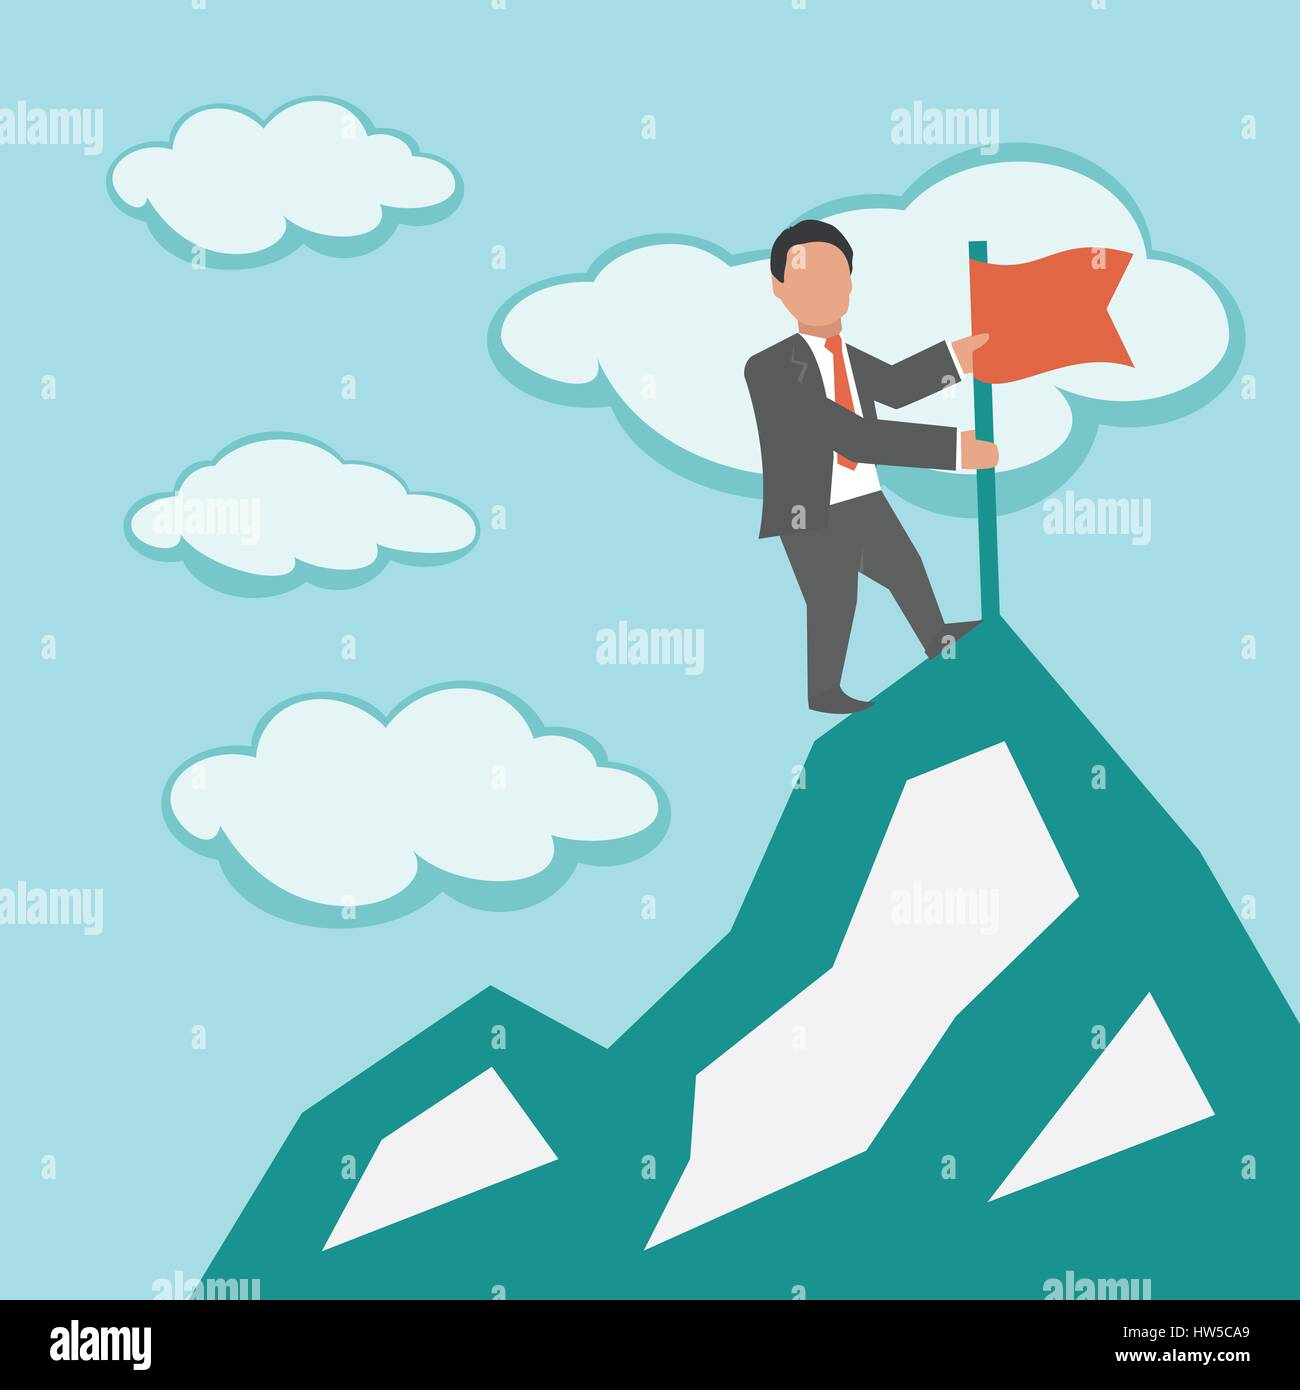 Le leadership. Business concept illustration Photo Stock